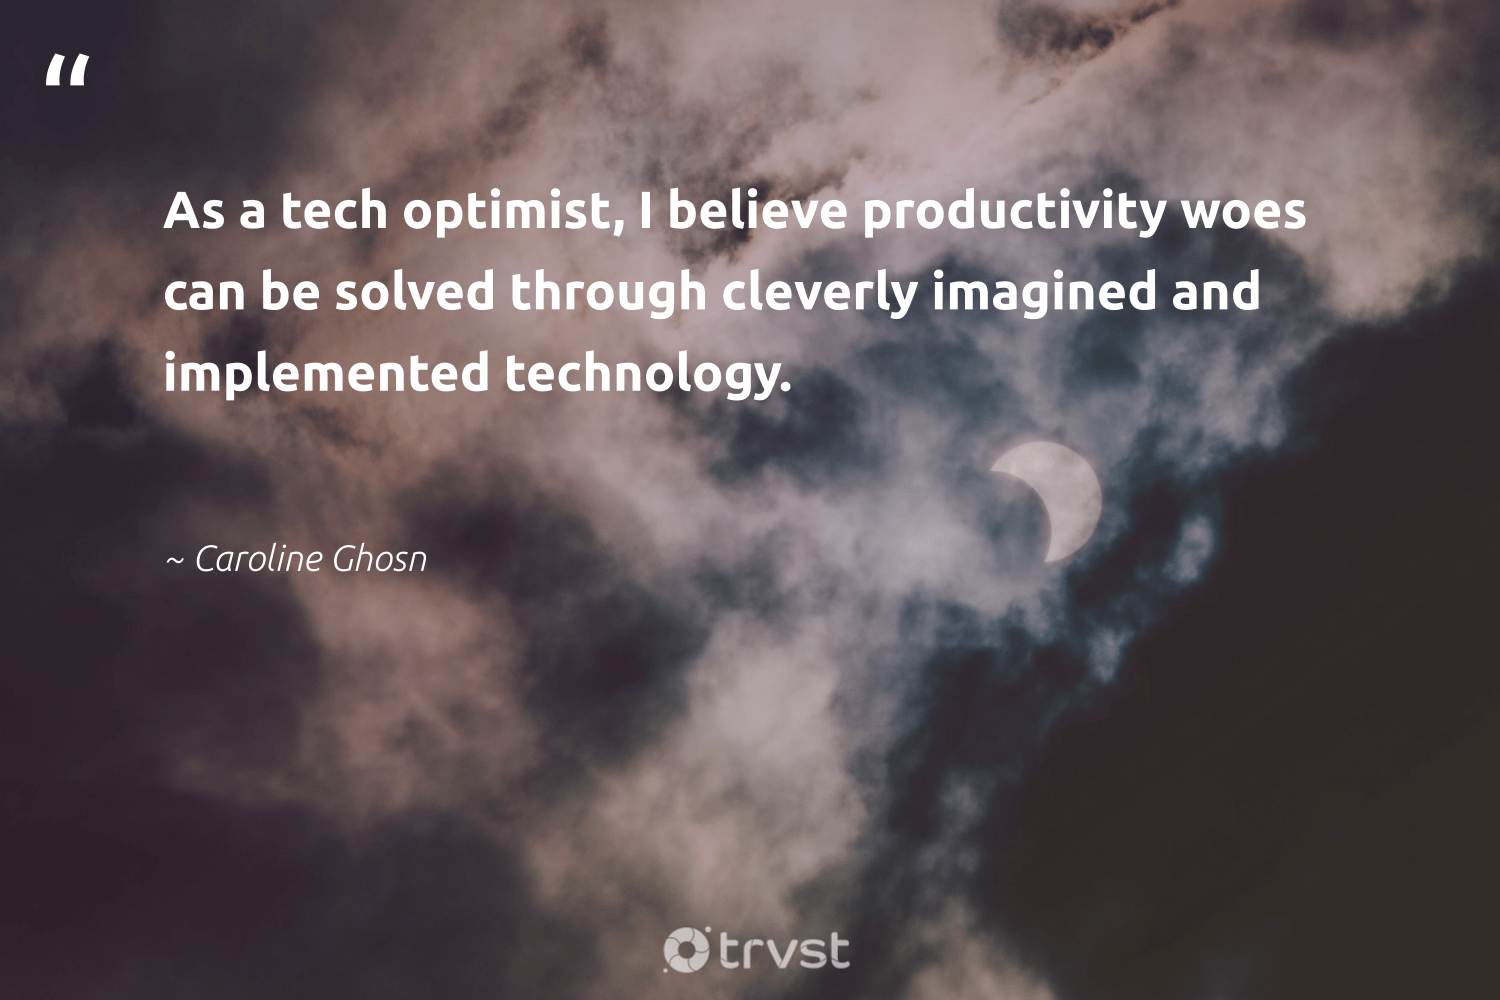 """""""As a tech optimist, I believe productivity woes can be solved through cleverly imagined and implemented technology.""""  - Caroline Ghosn #trvst #quotes #productivity #focus #create #futureofwork #socialchange #productive #learning #nevergiveup #thinkgreen #mostwontiwill"""